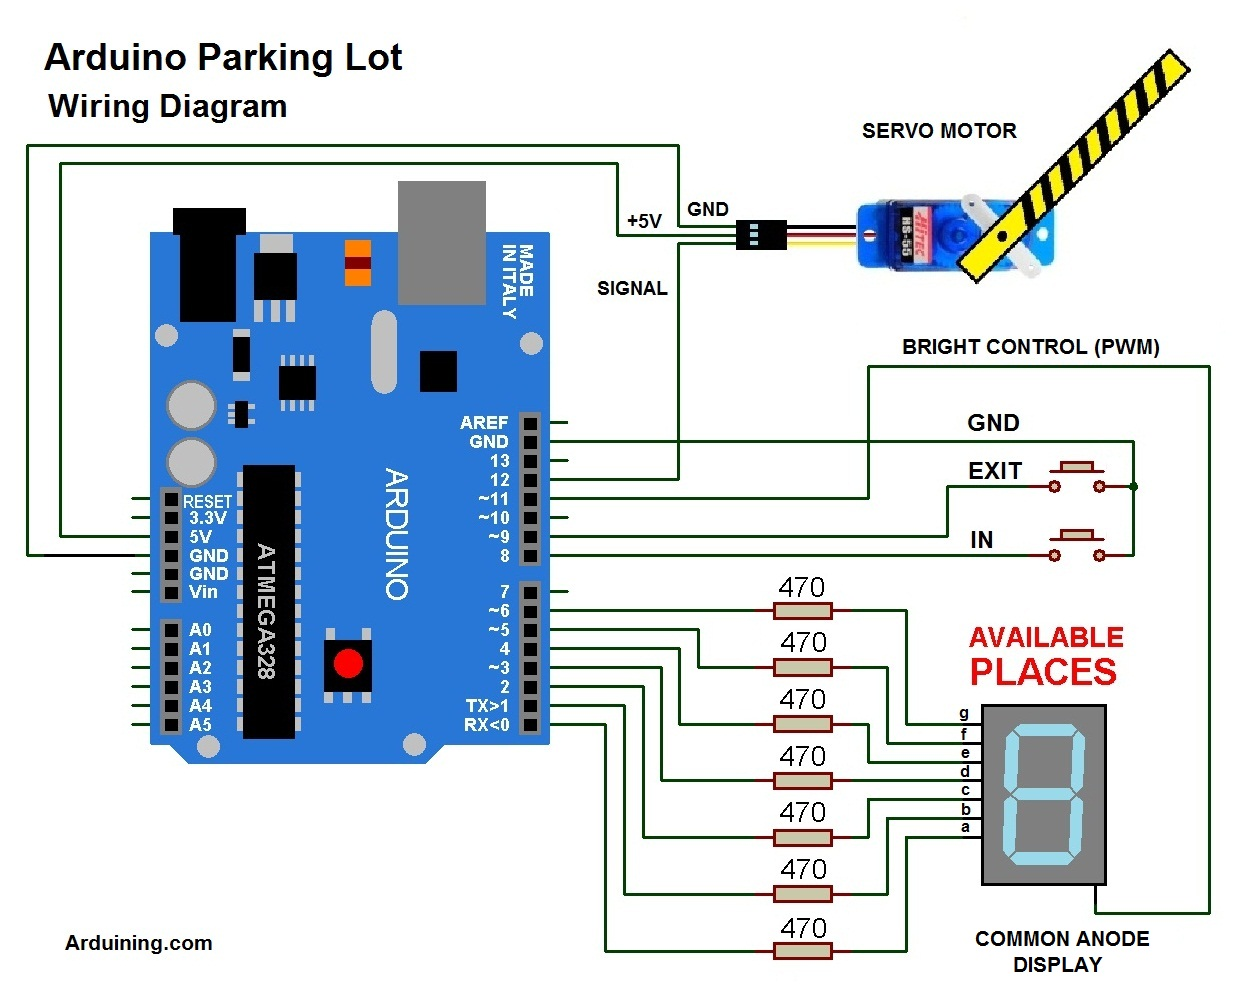 4 pole relay wiring diagram 2000 honda accord parts arduino parking lot ( filled ) – arduining